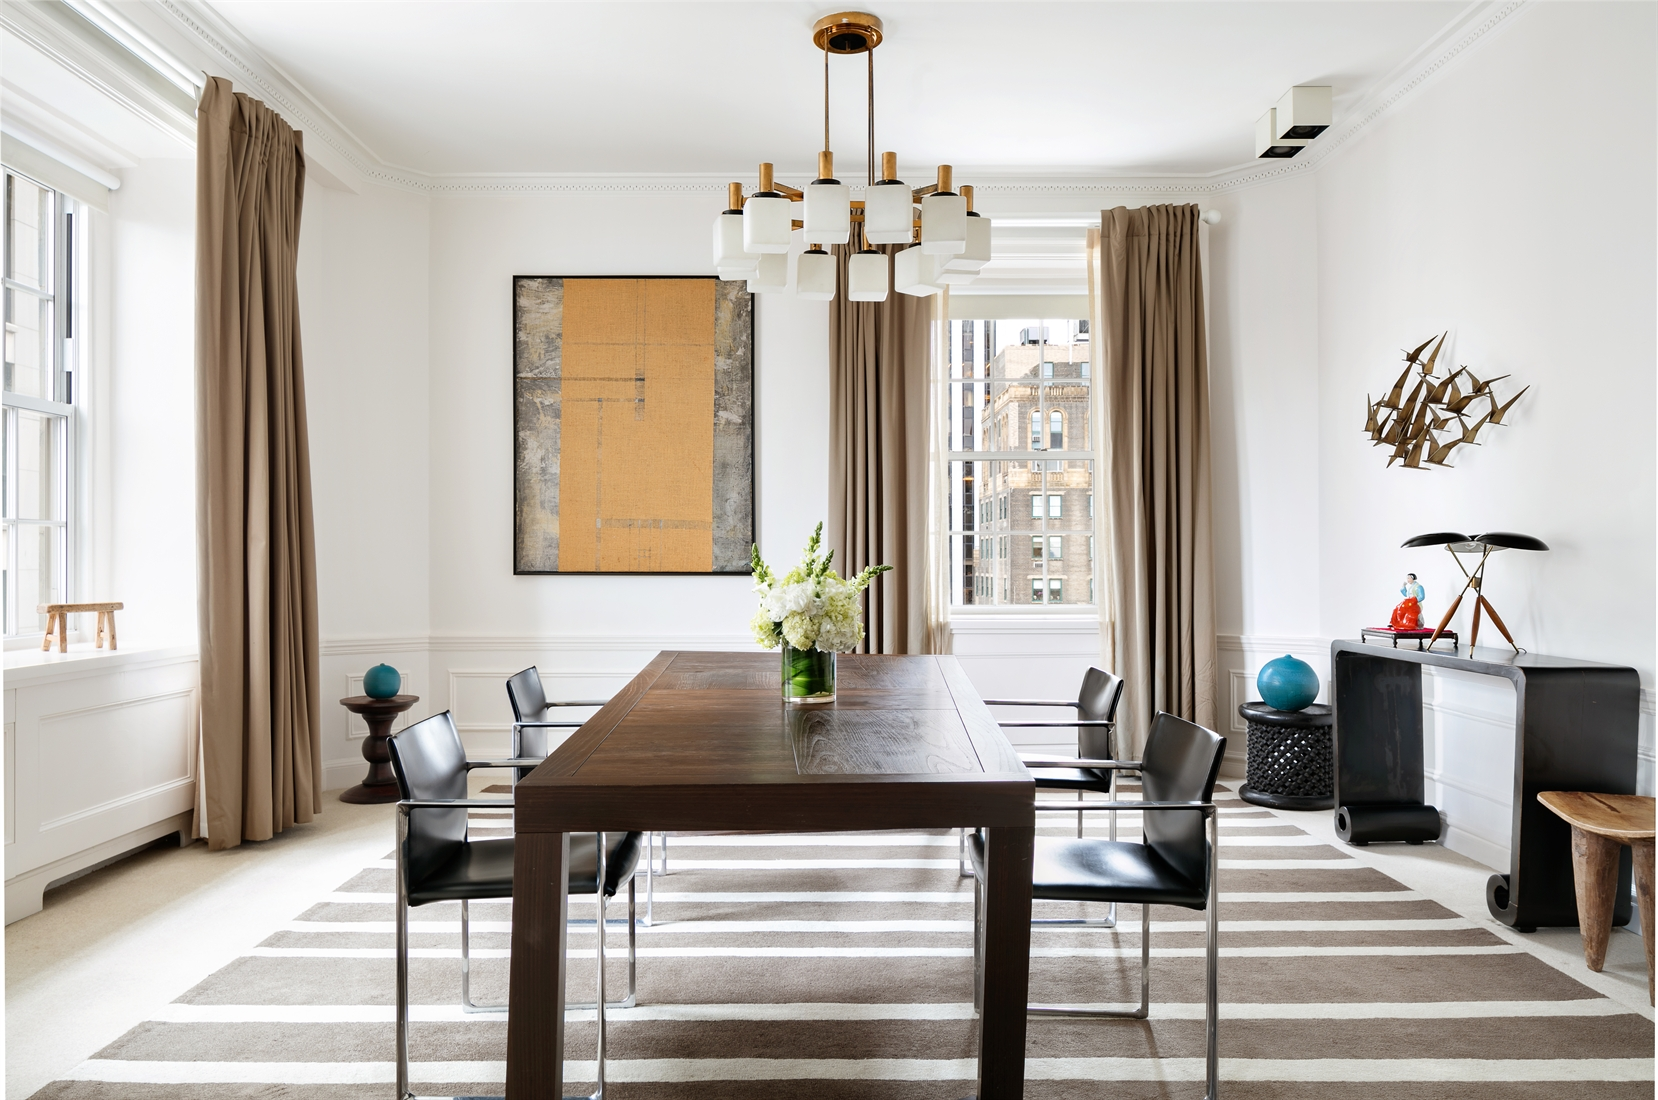 795 Fifth Avenue 21 Upper East Side New York NY 10065